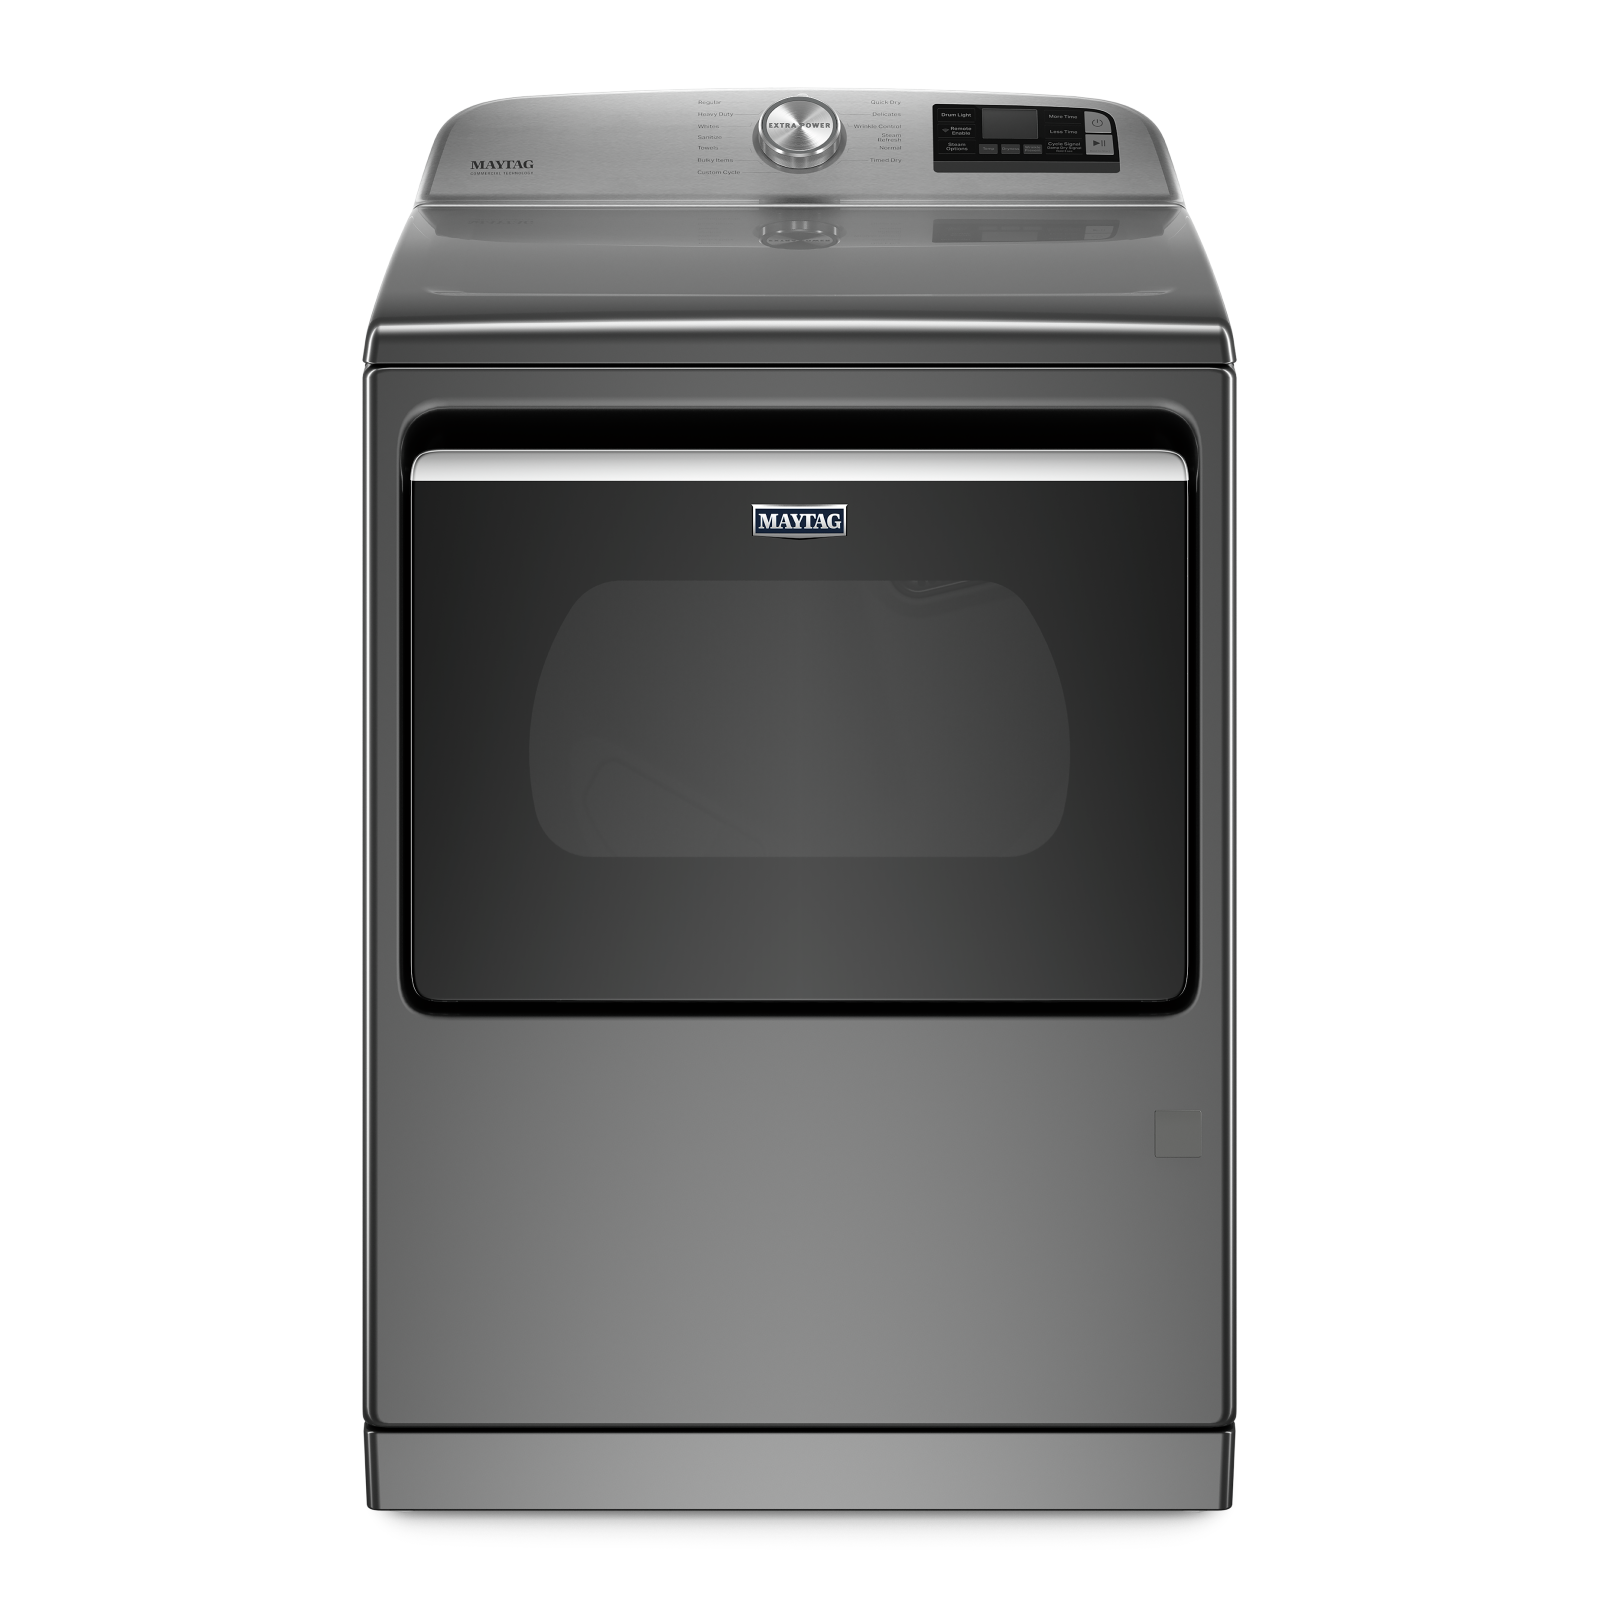 Maytag Dryer MGD7230HC